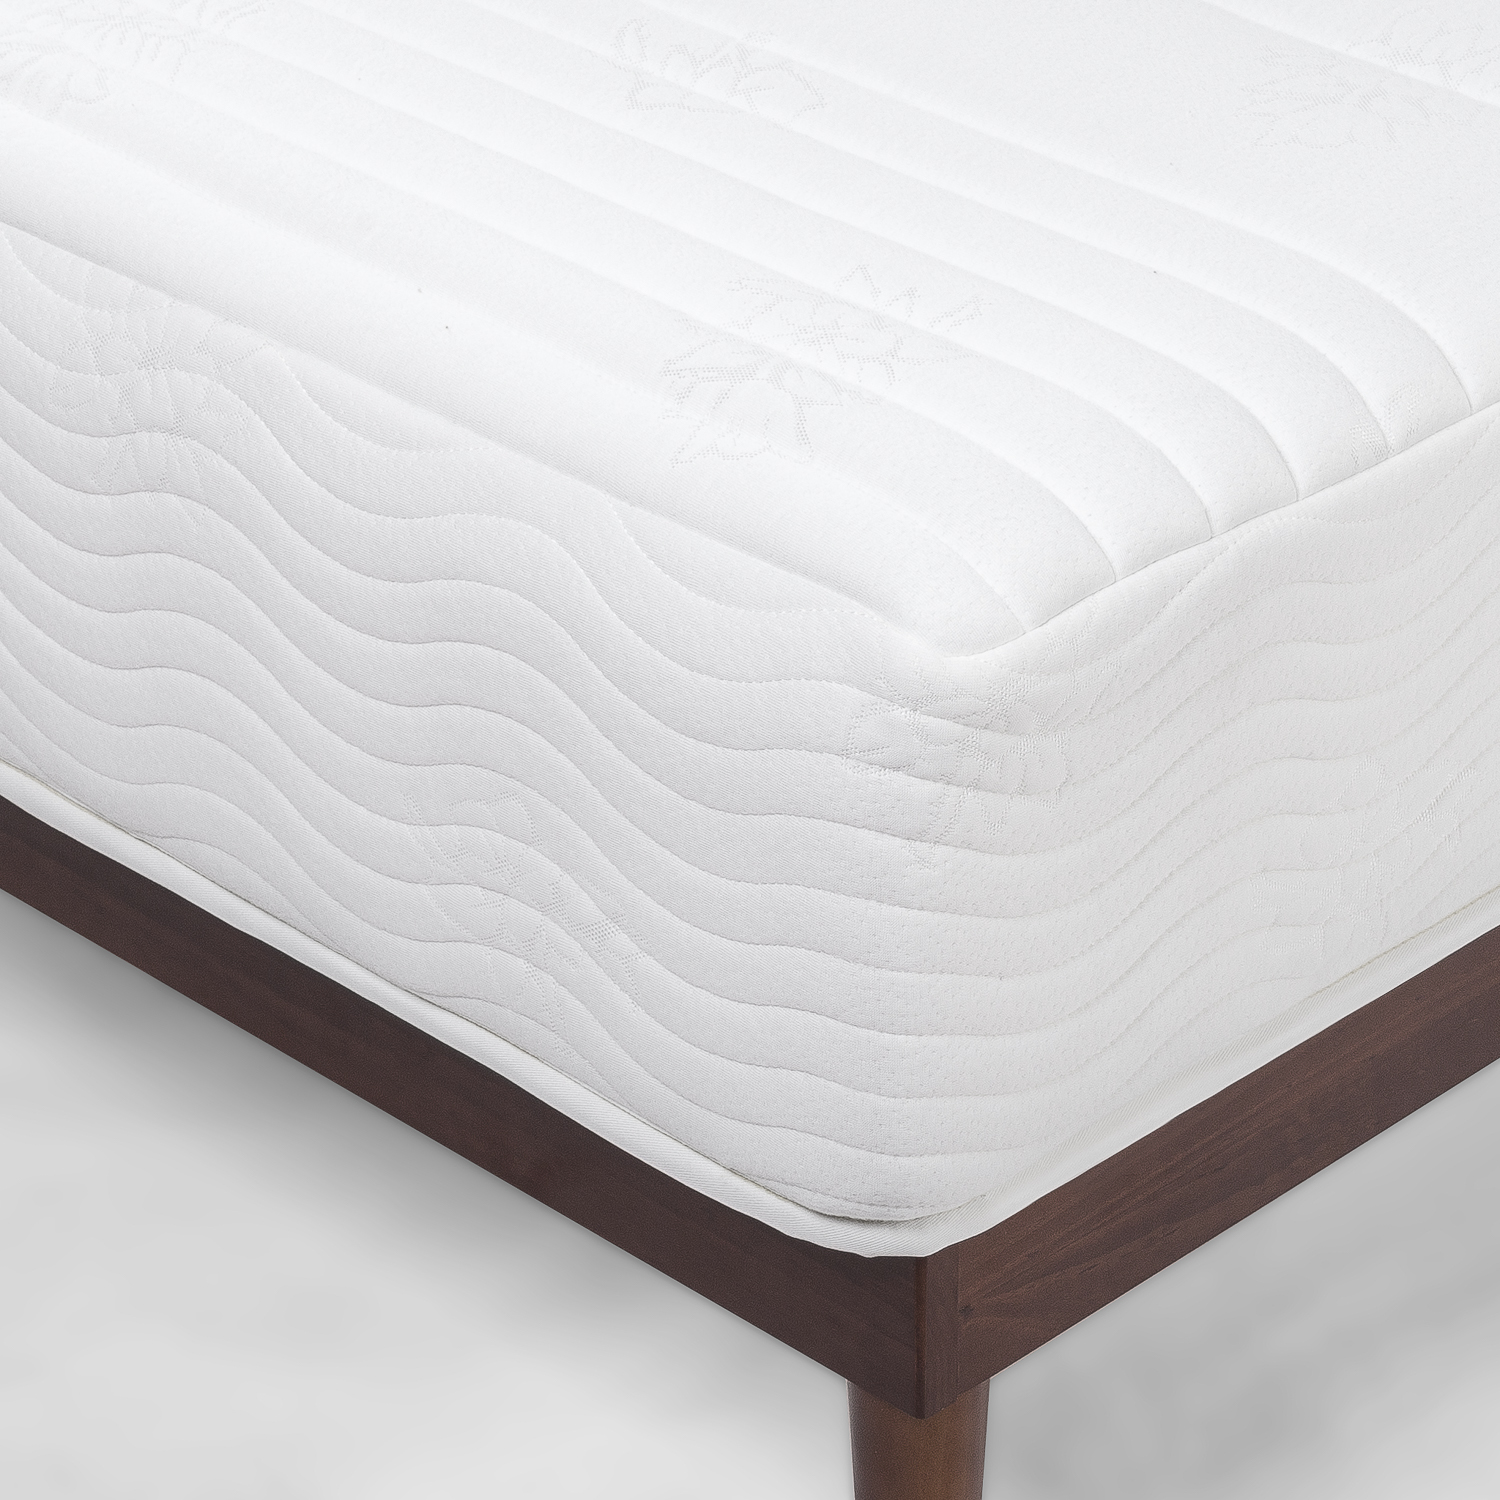 Spa Sensations By Zinus 10 Memory Foam And Spring Hybrid Mattress Multiple Sizes